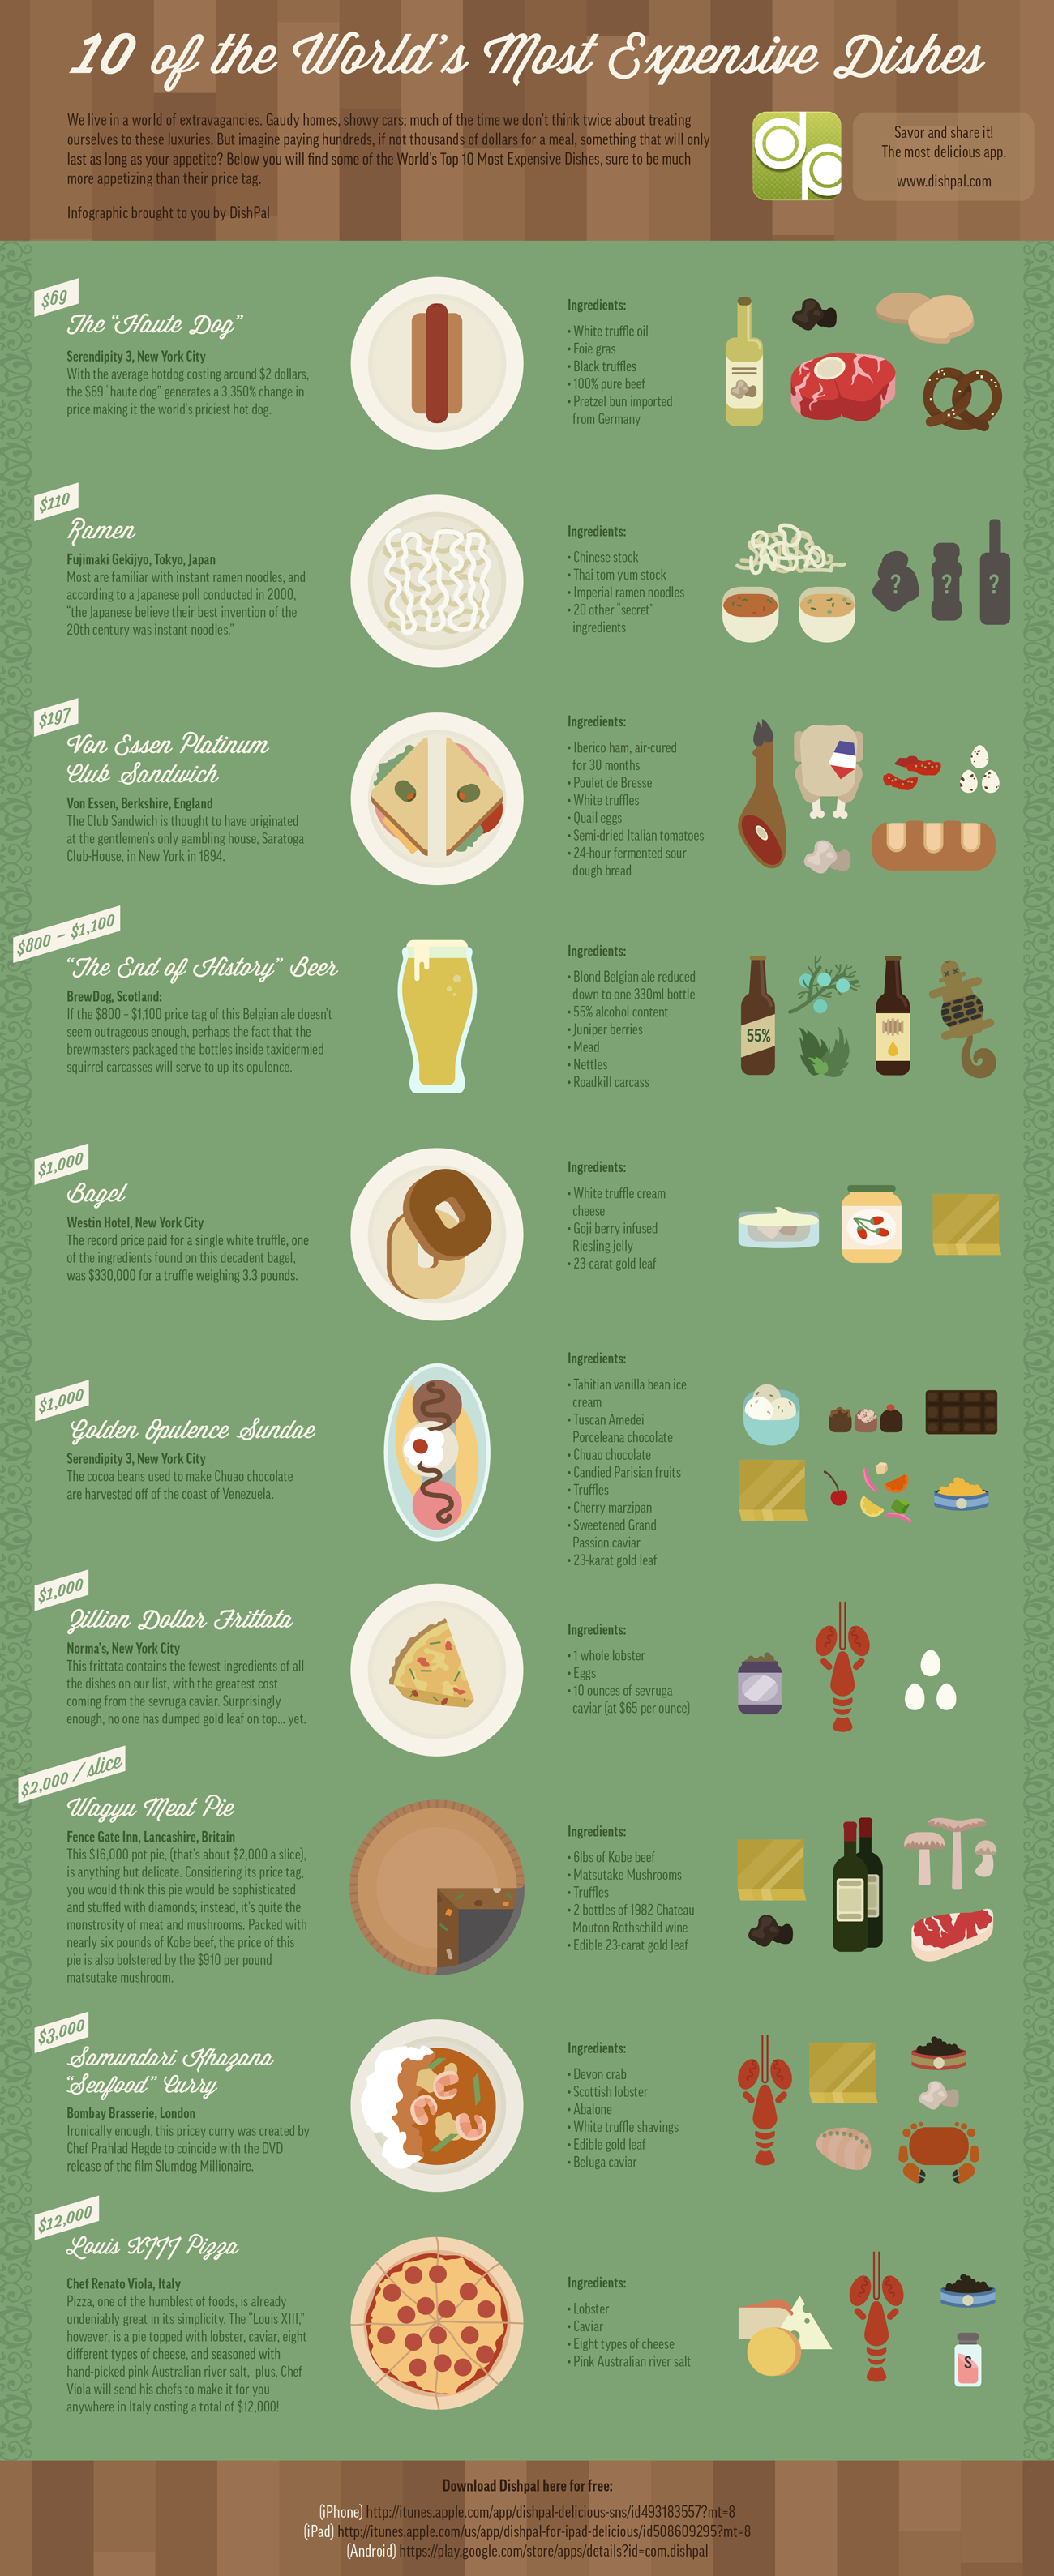 worlds-Most-Expensive-Dishes-infographic